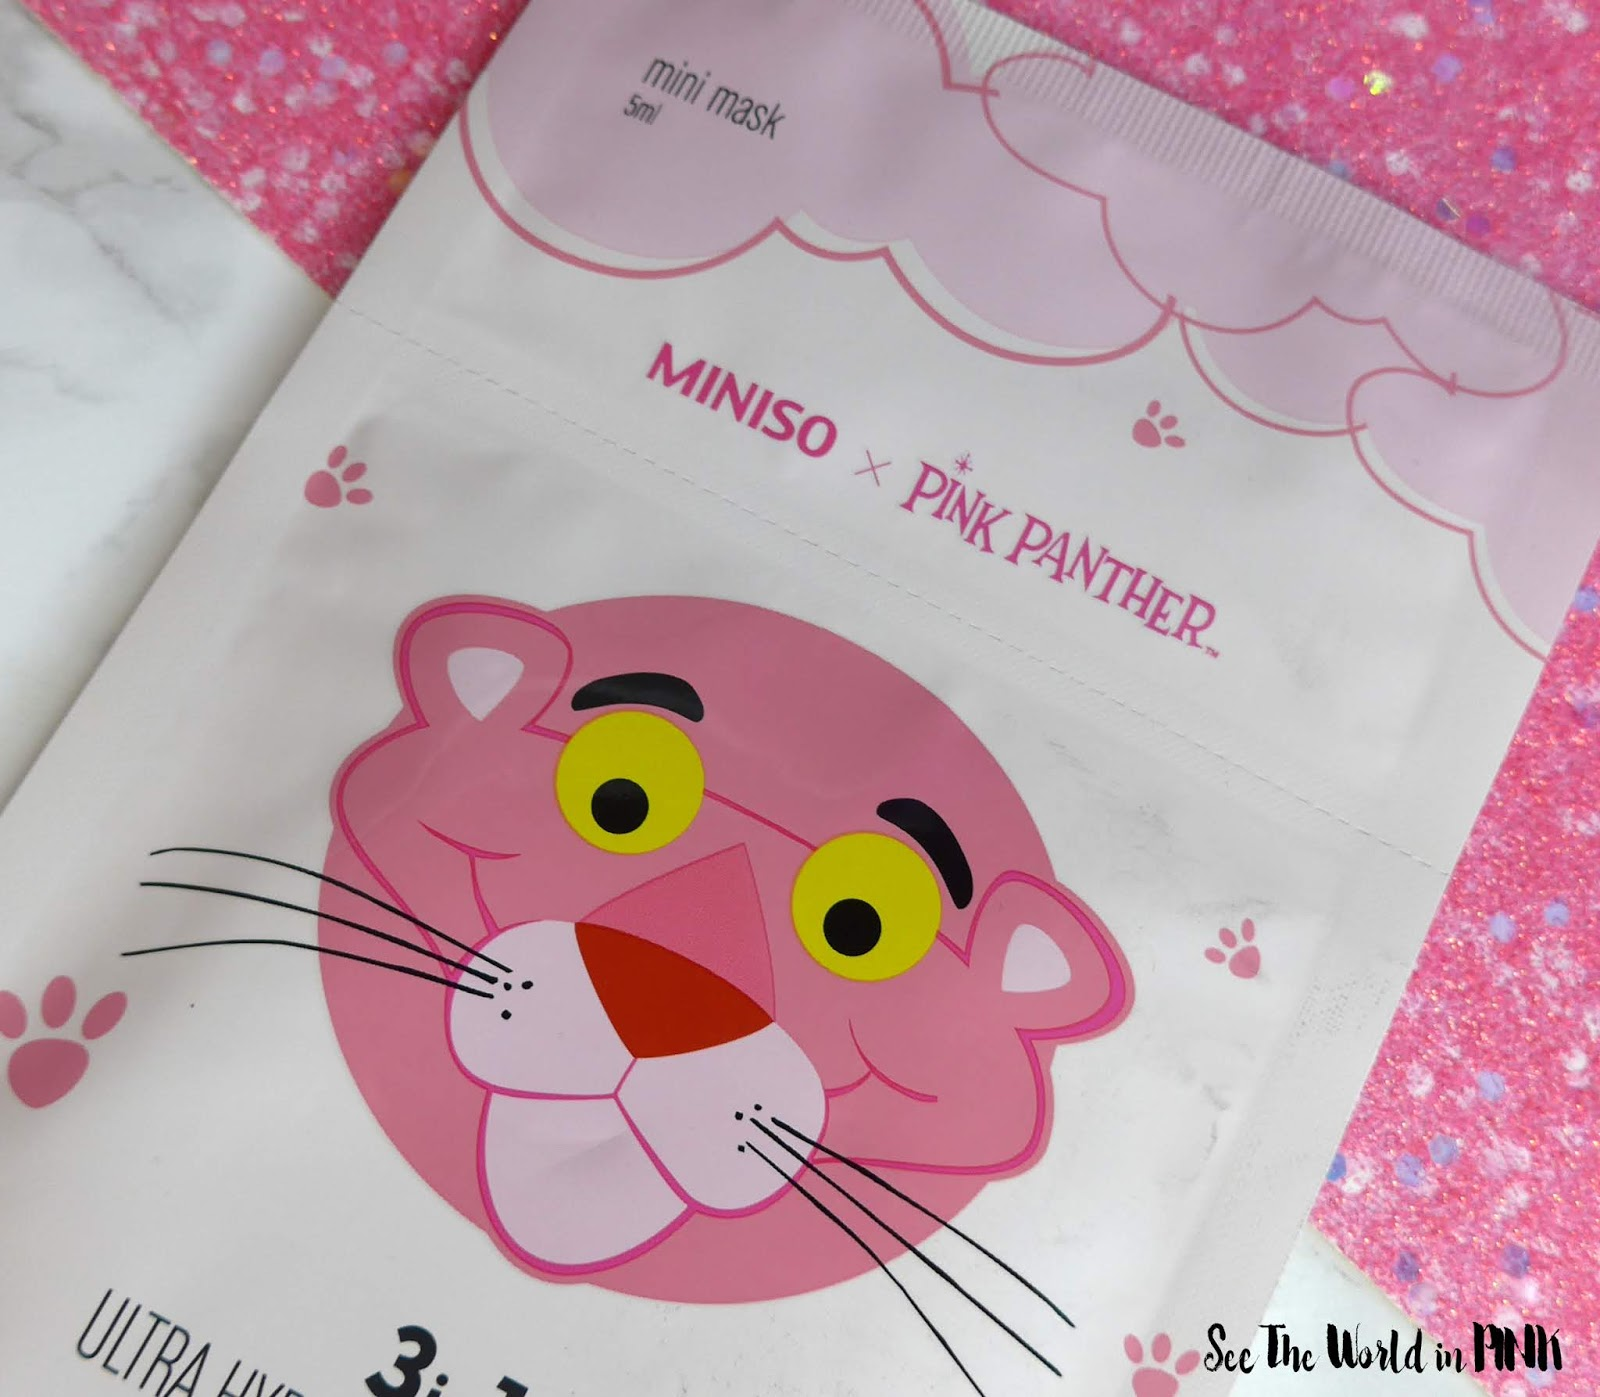 Miniso x Pink Panther 3 in 1 Ultra Hydration Facial Mask